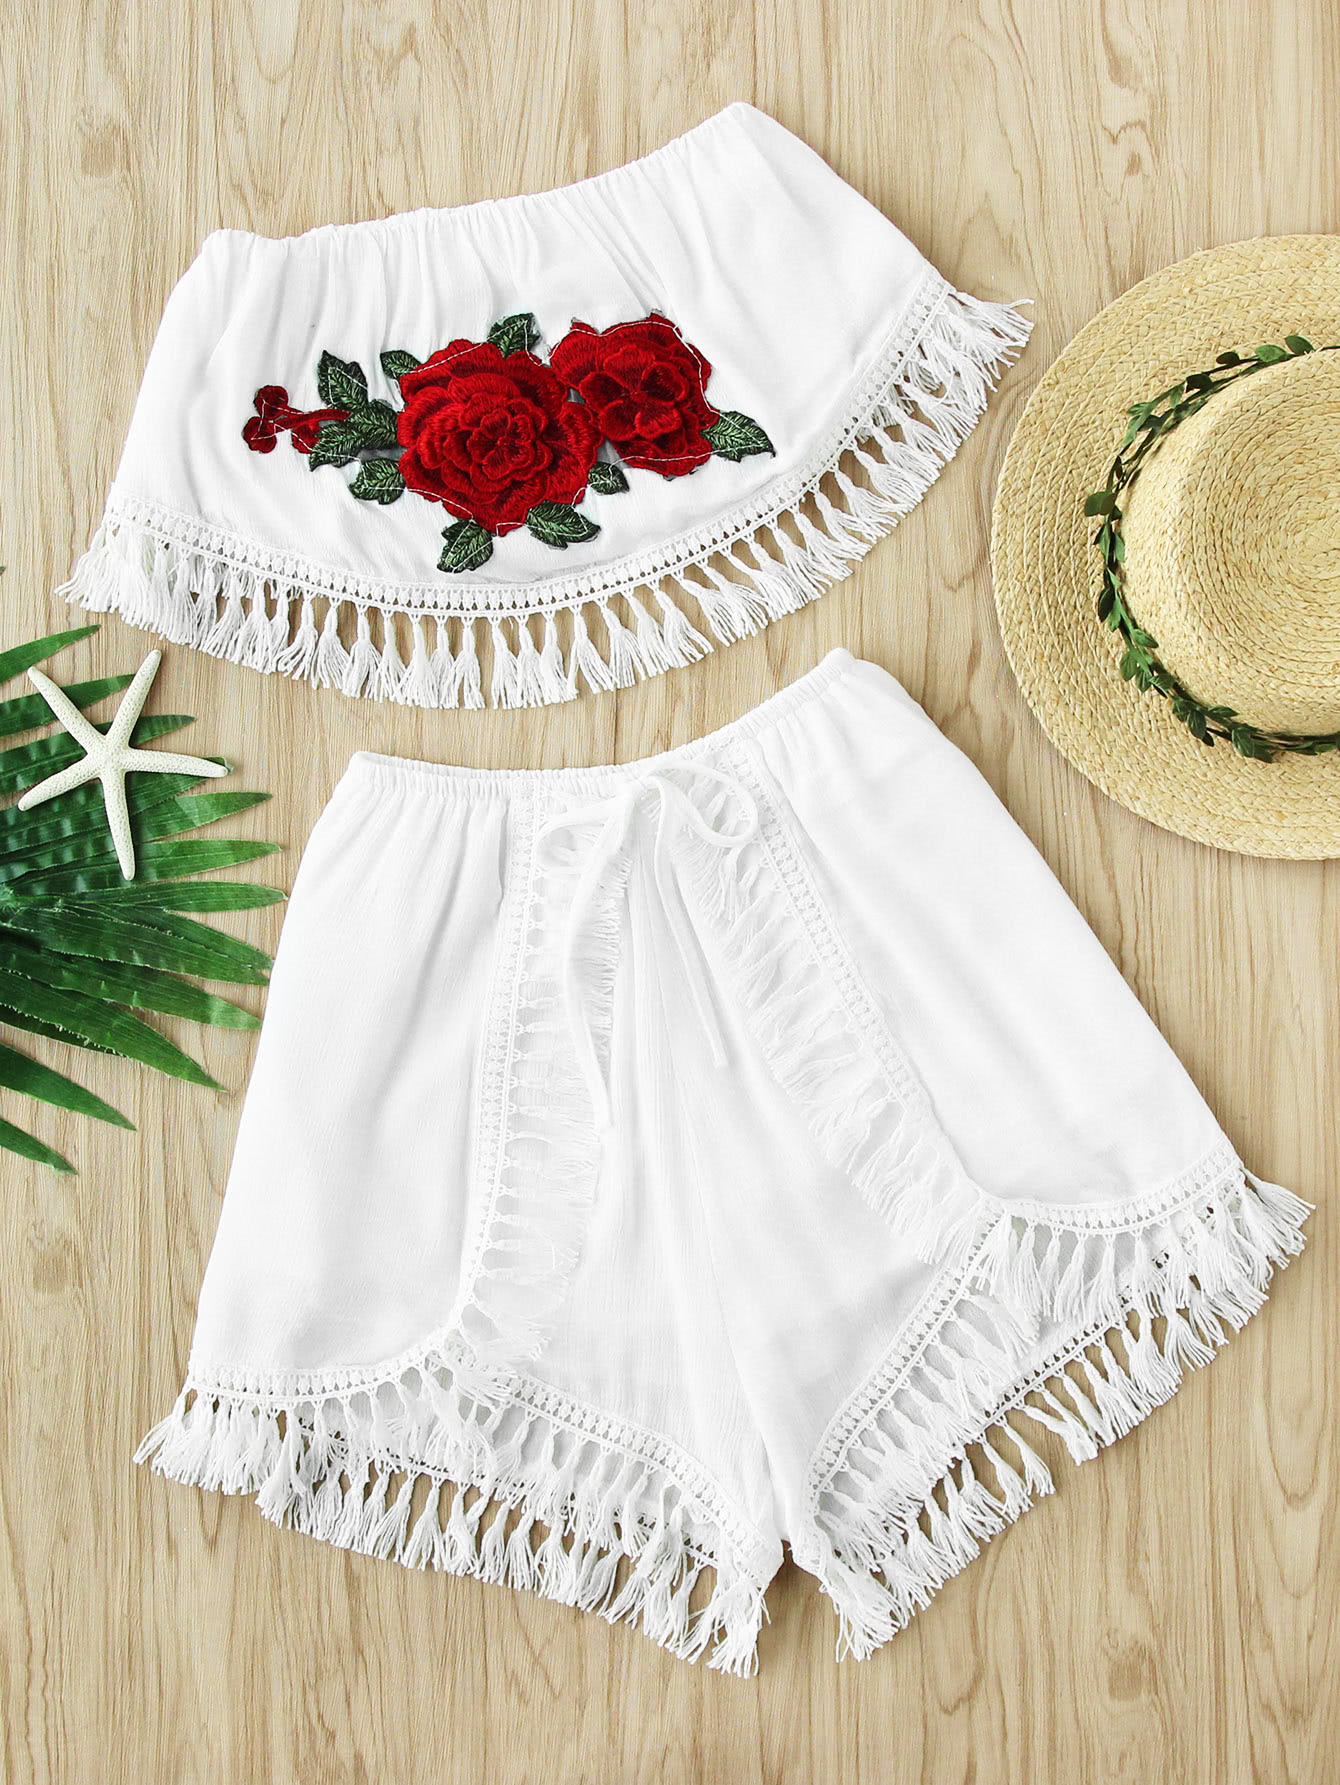 Embroidered Appliques Crochet Tassel Trim Top With Shorts white crochet trim shoulder tie with tassel camis